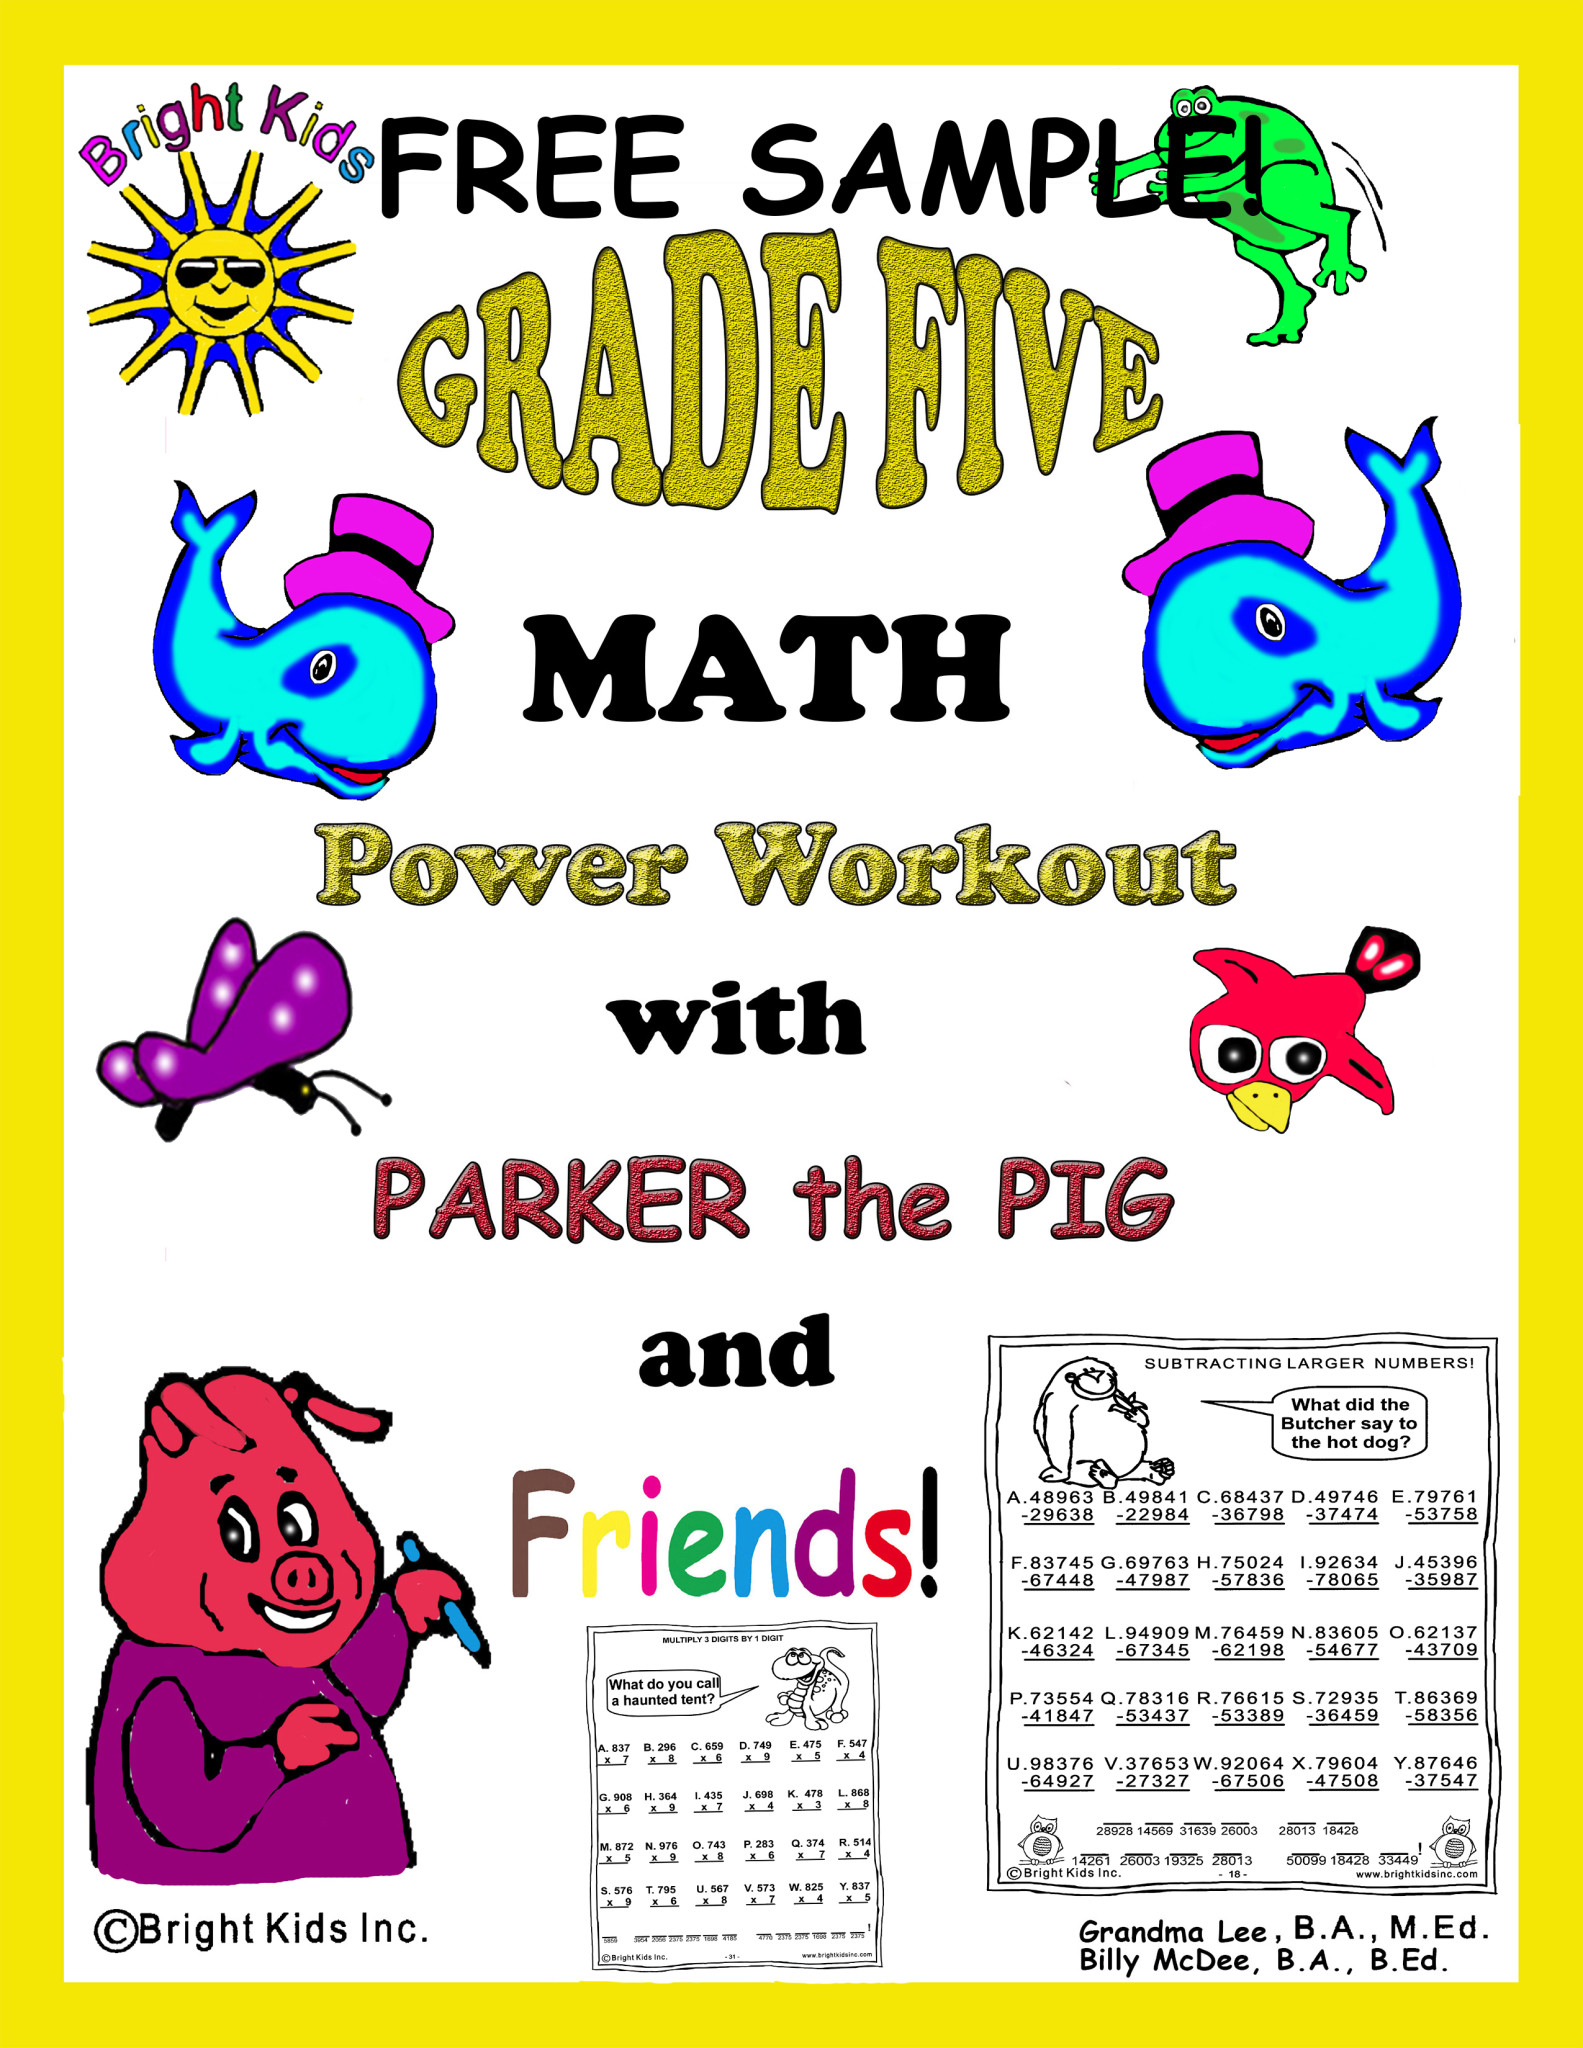 Worksheet Math 5 grade 5 math power workout free sample 1 bk cover